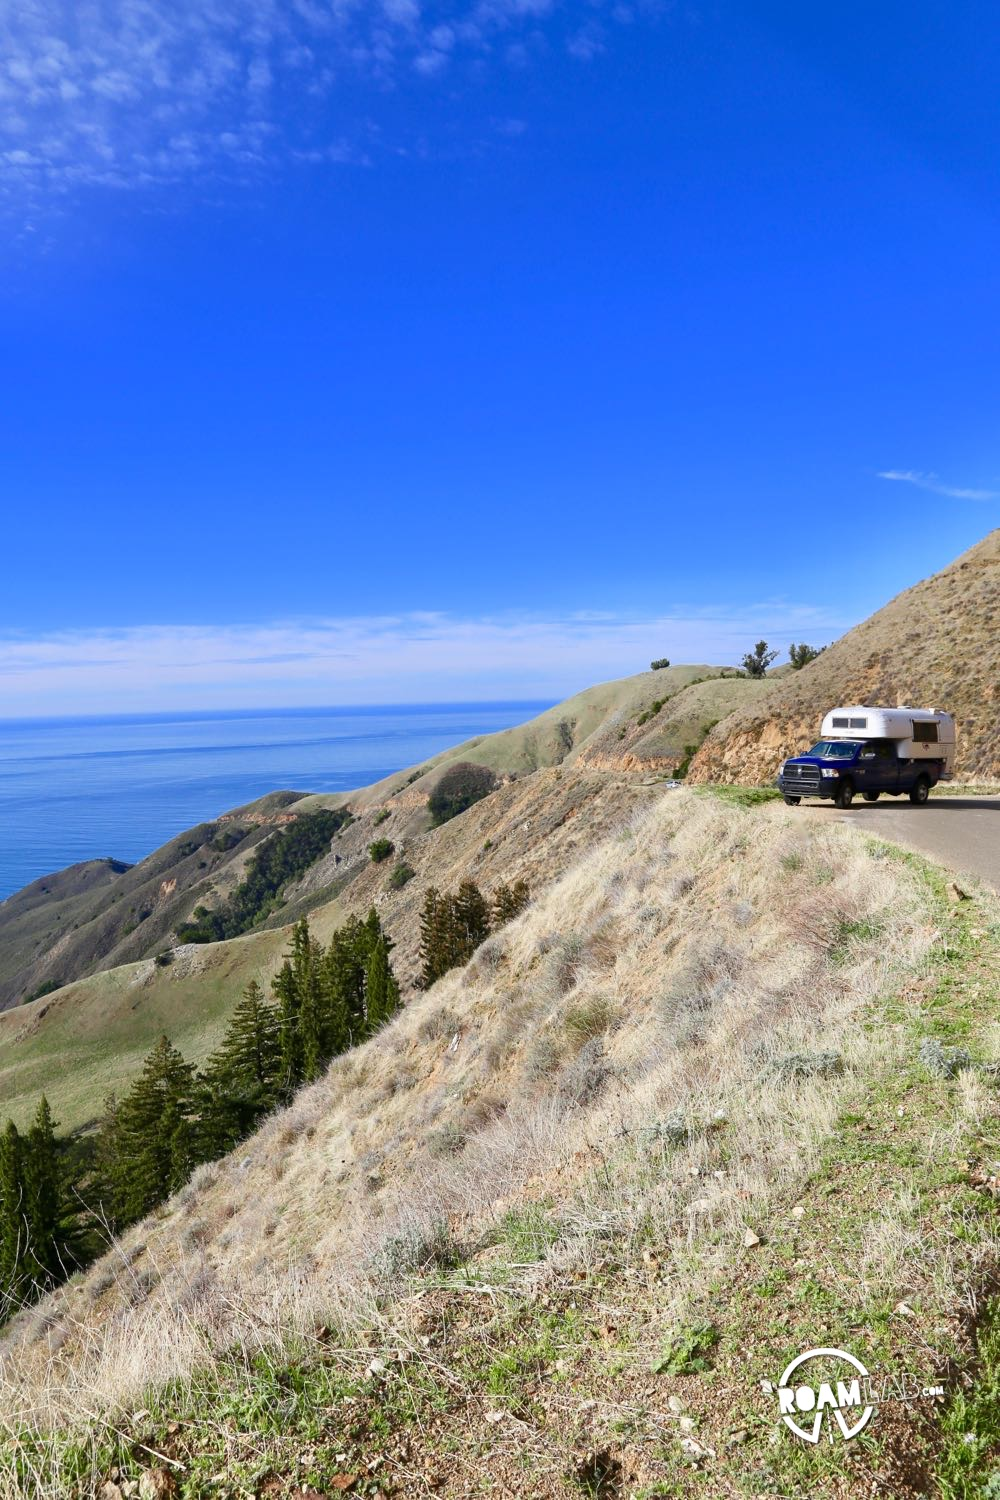 Big Sur to Paso Robles On The Nacimiento-Fergusson Road